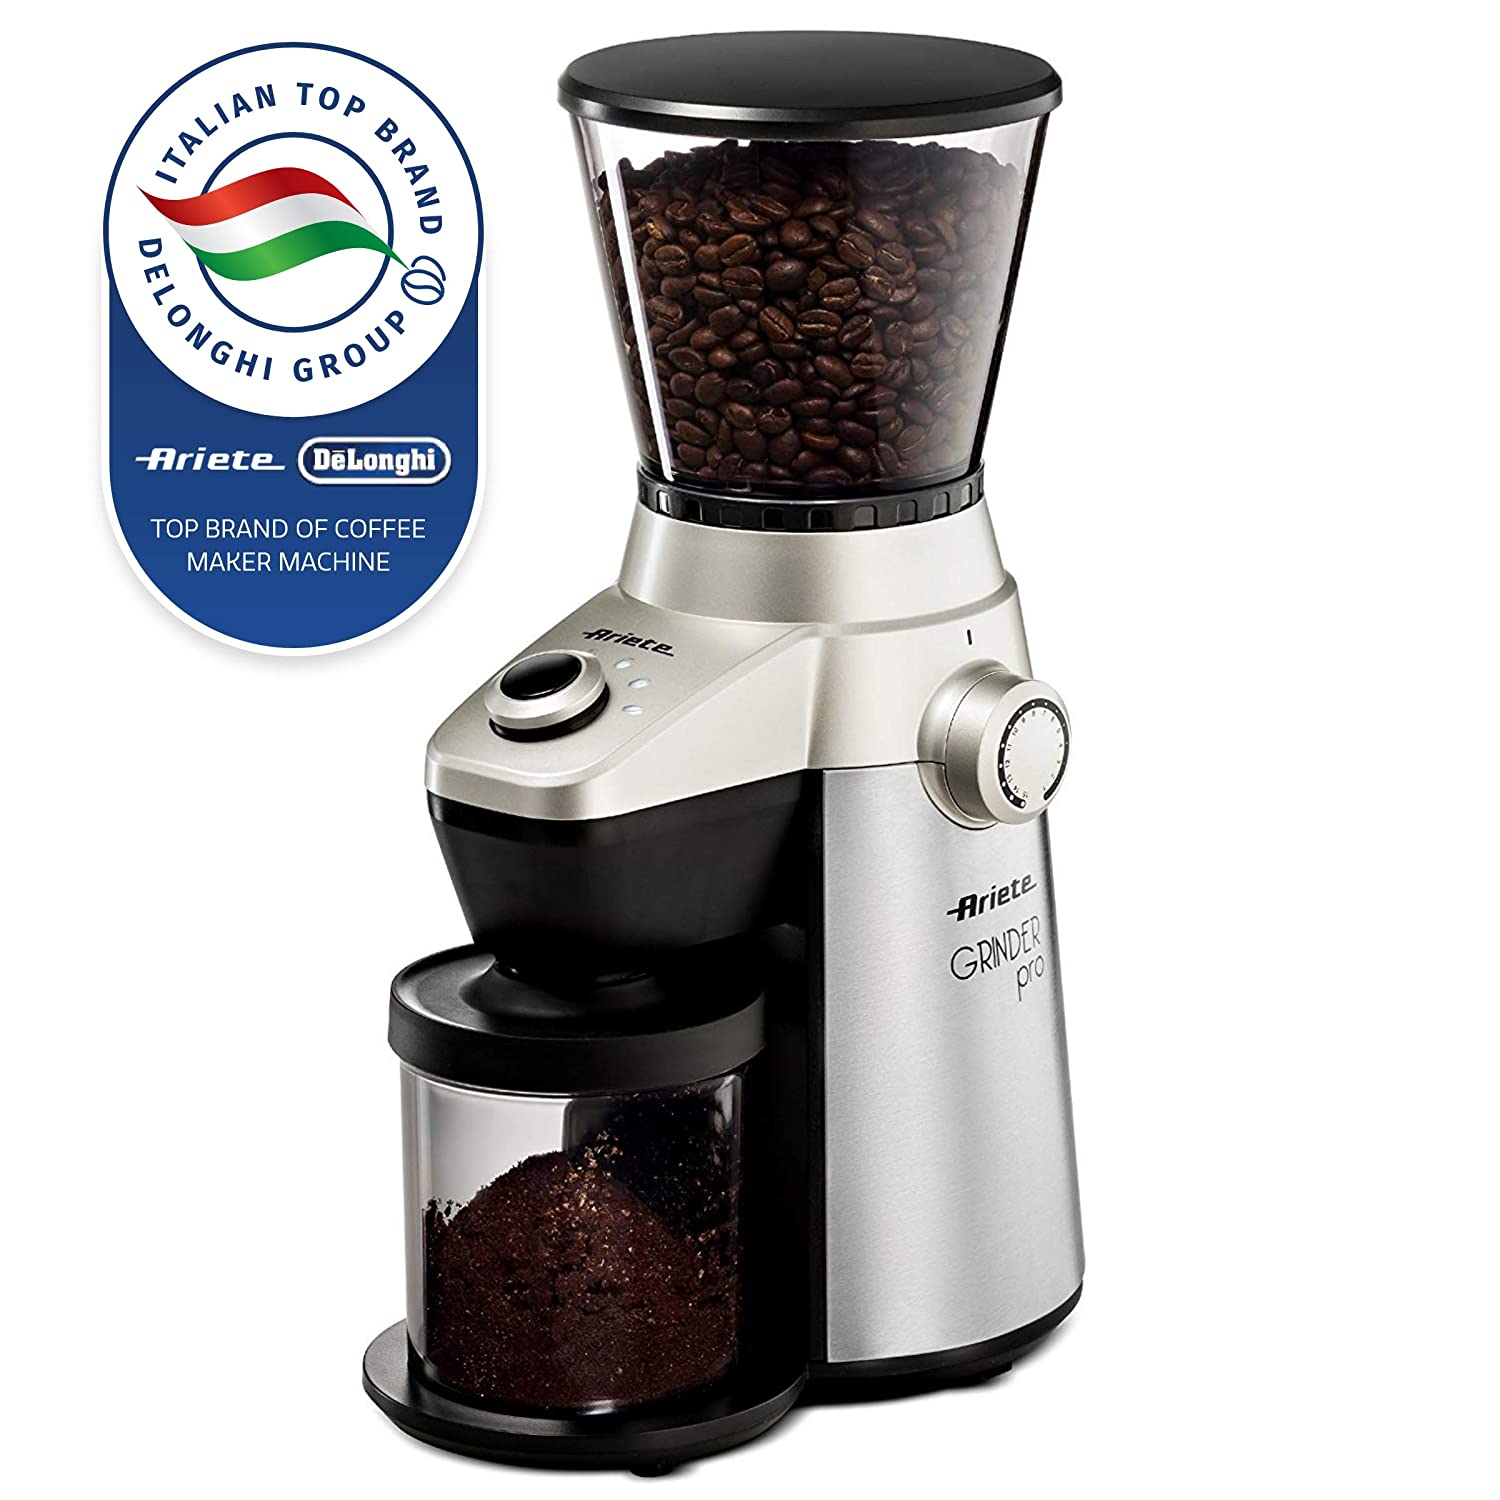 Ariete - delonghi electric coffee grinder